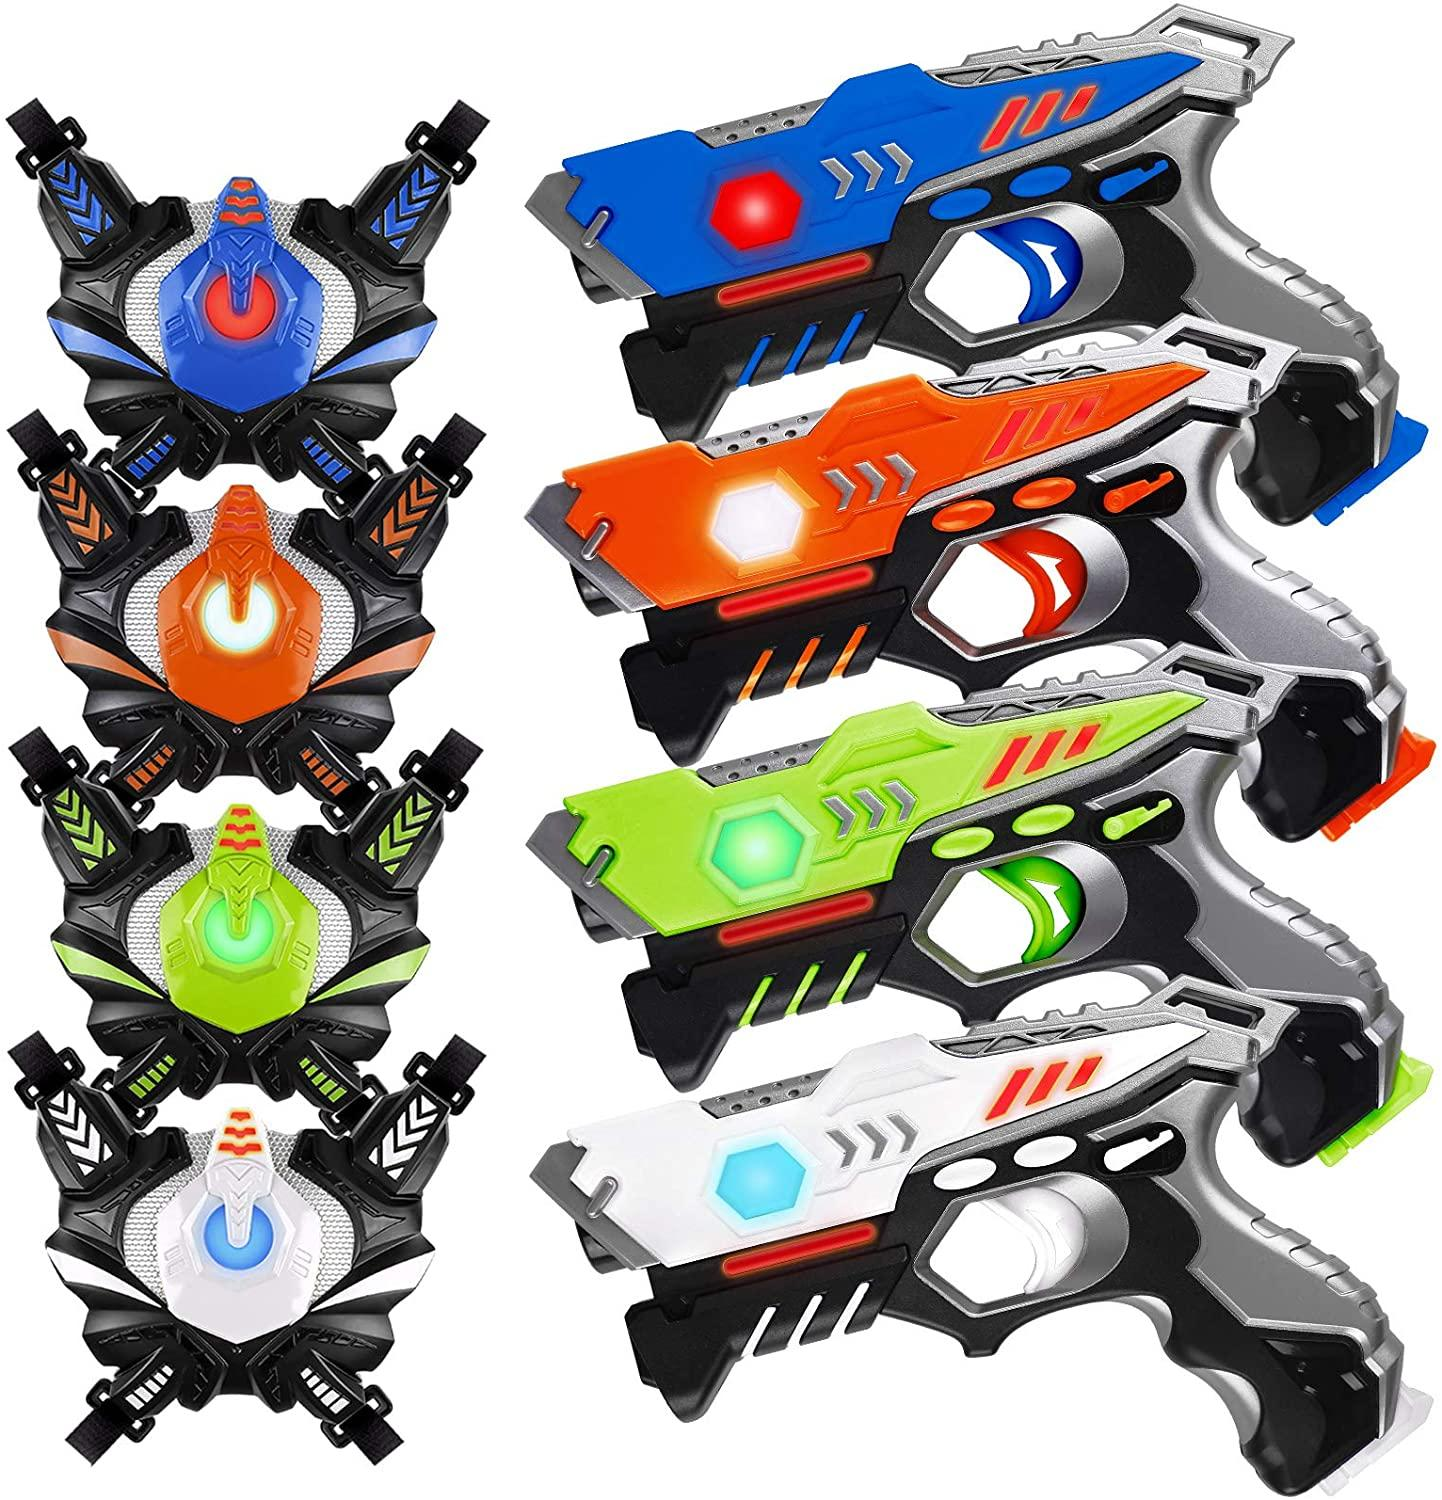 HISTOYE Infrared Laser Tag Guns Sets of 4 Players Game Laser Tag Sets with Gun Indoor Outdoor Toy Gun